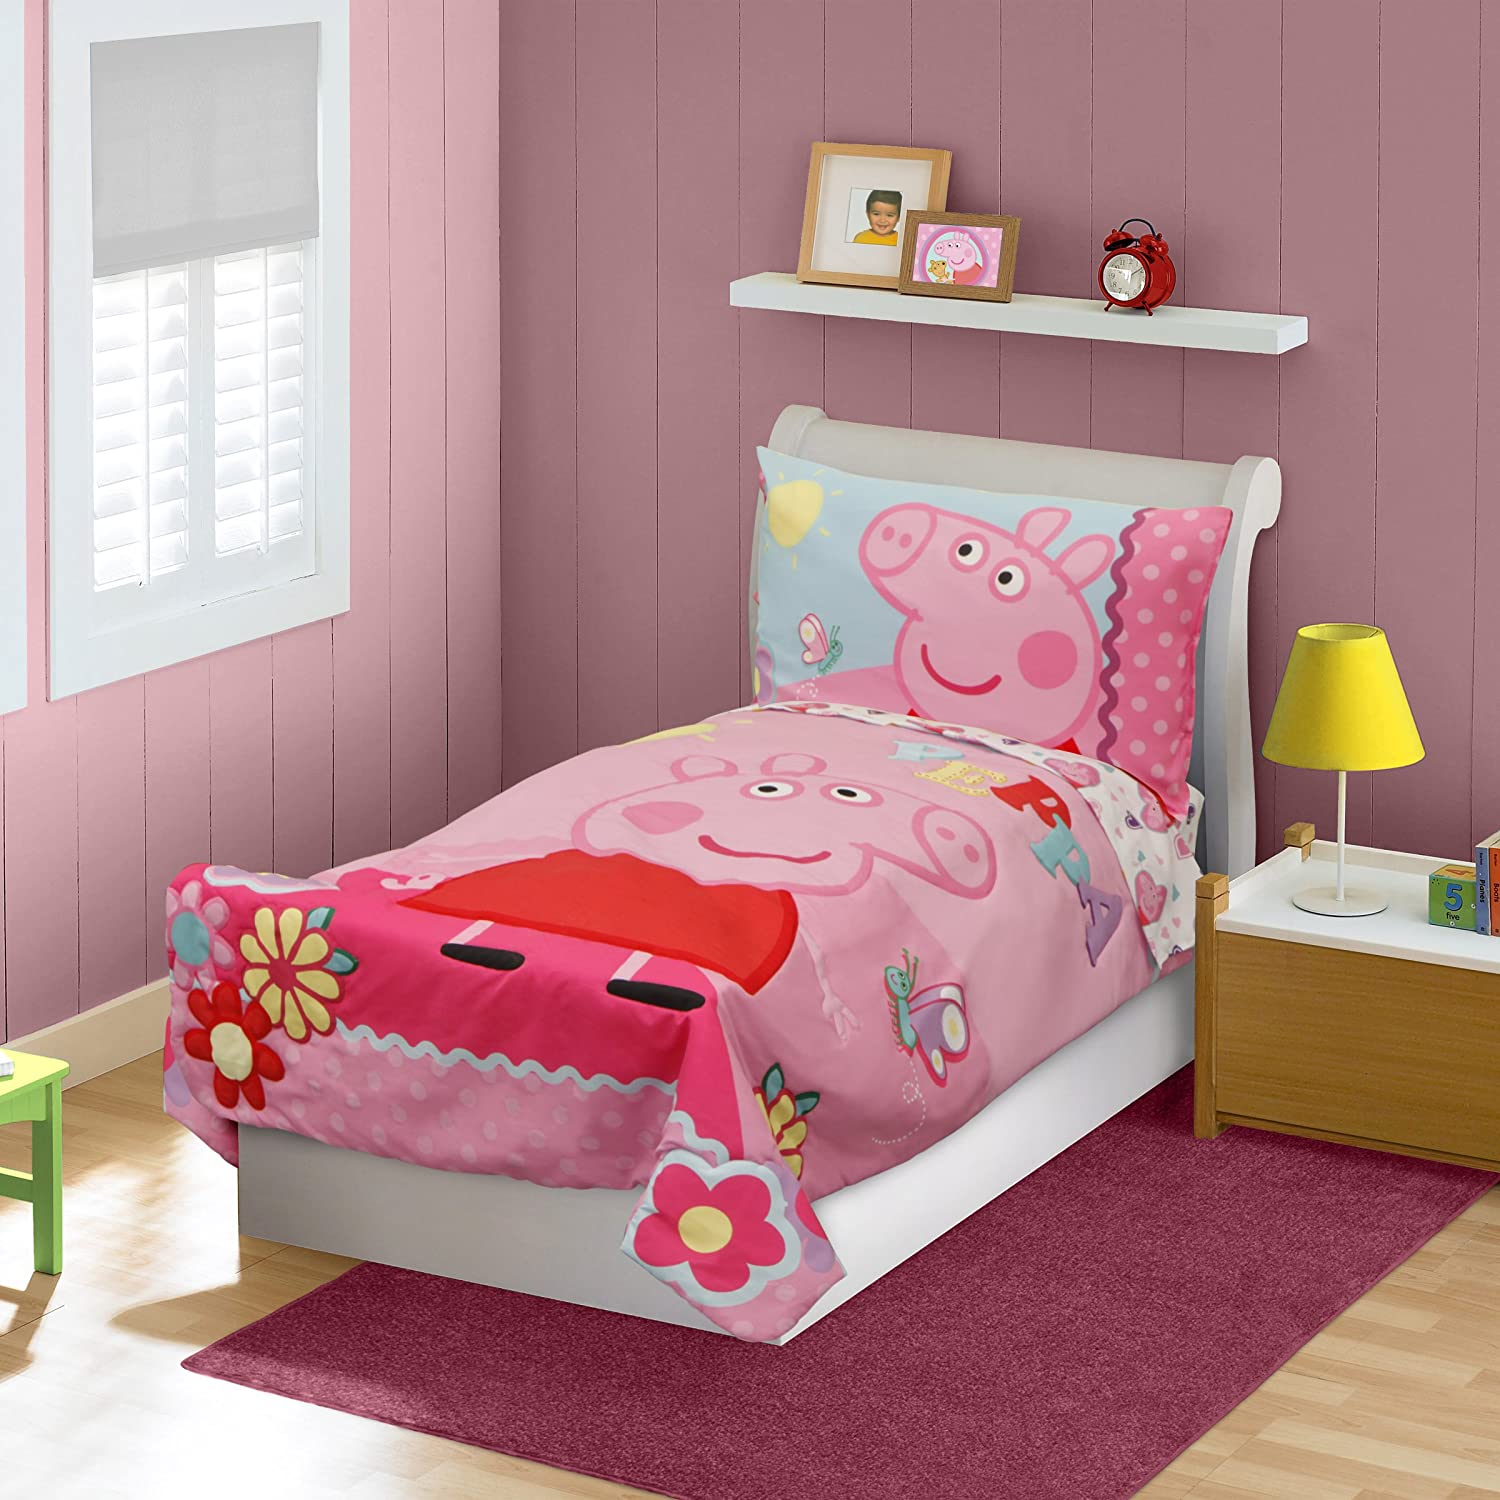 Winnie the pooh toddler bedding - Peppa Pig Adoreable Toddler Bed Set Pink